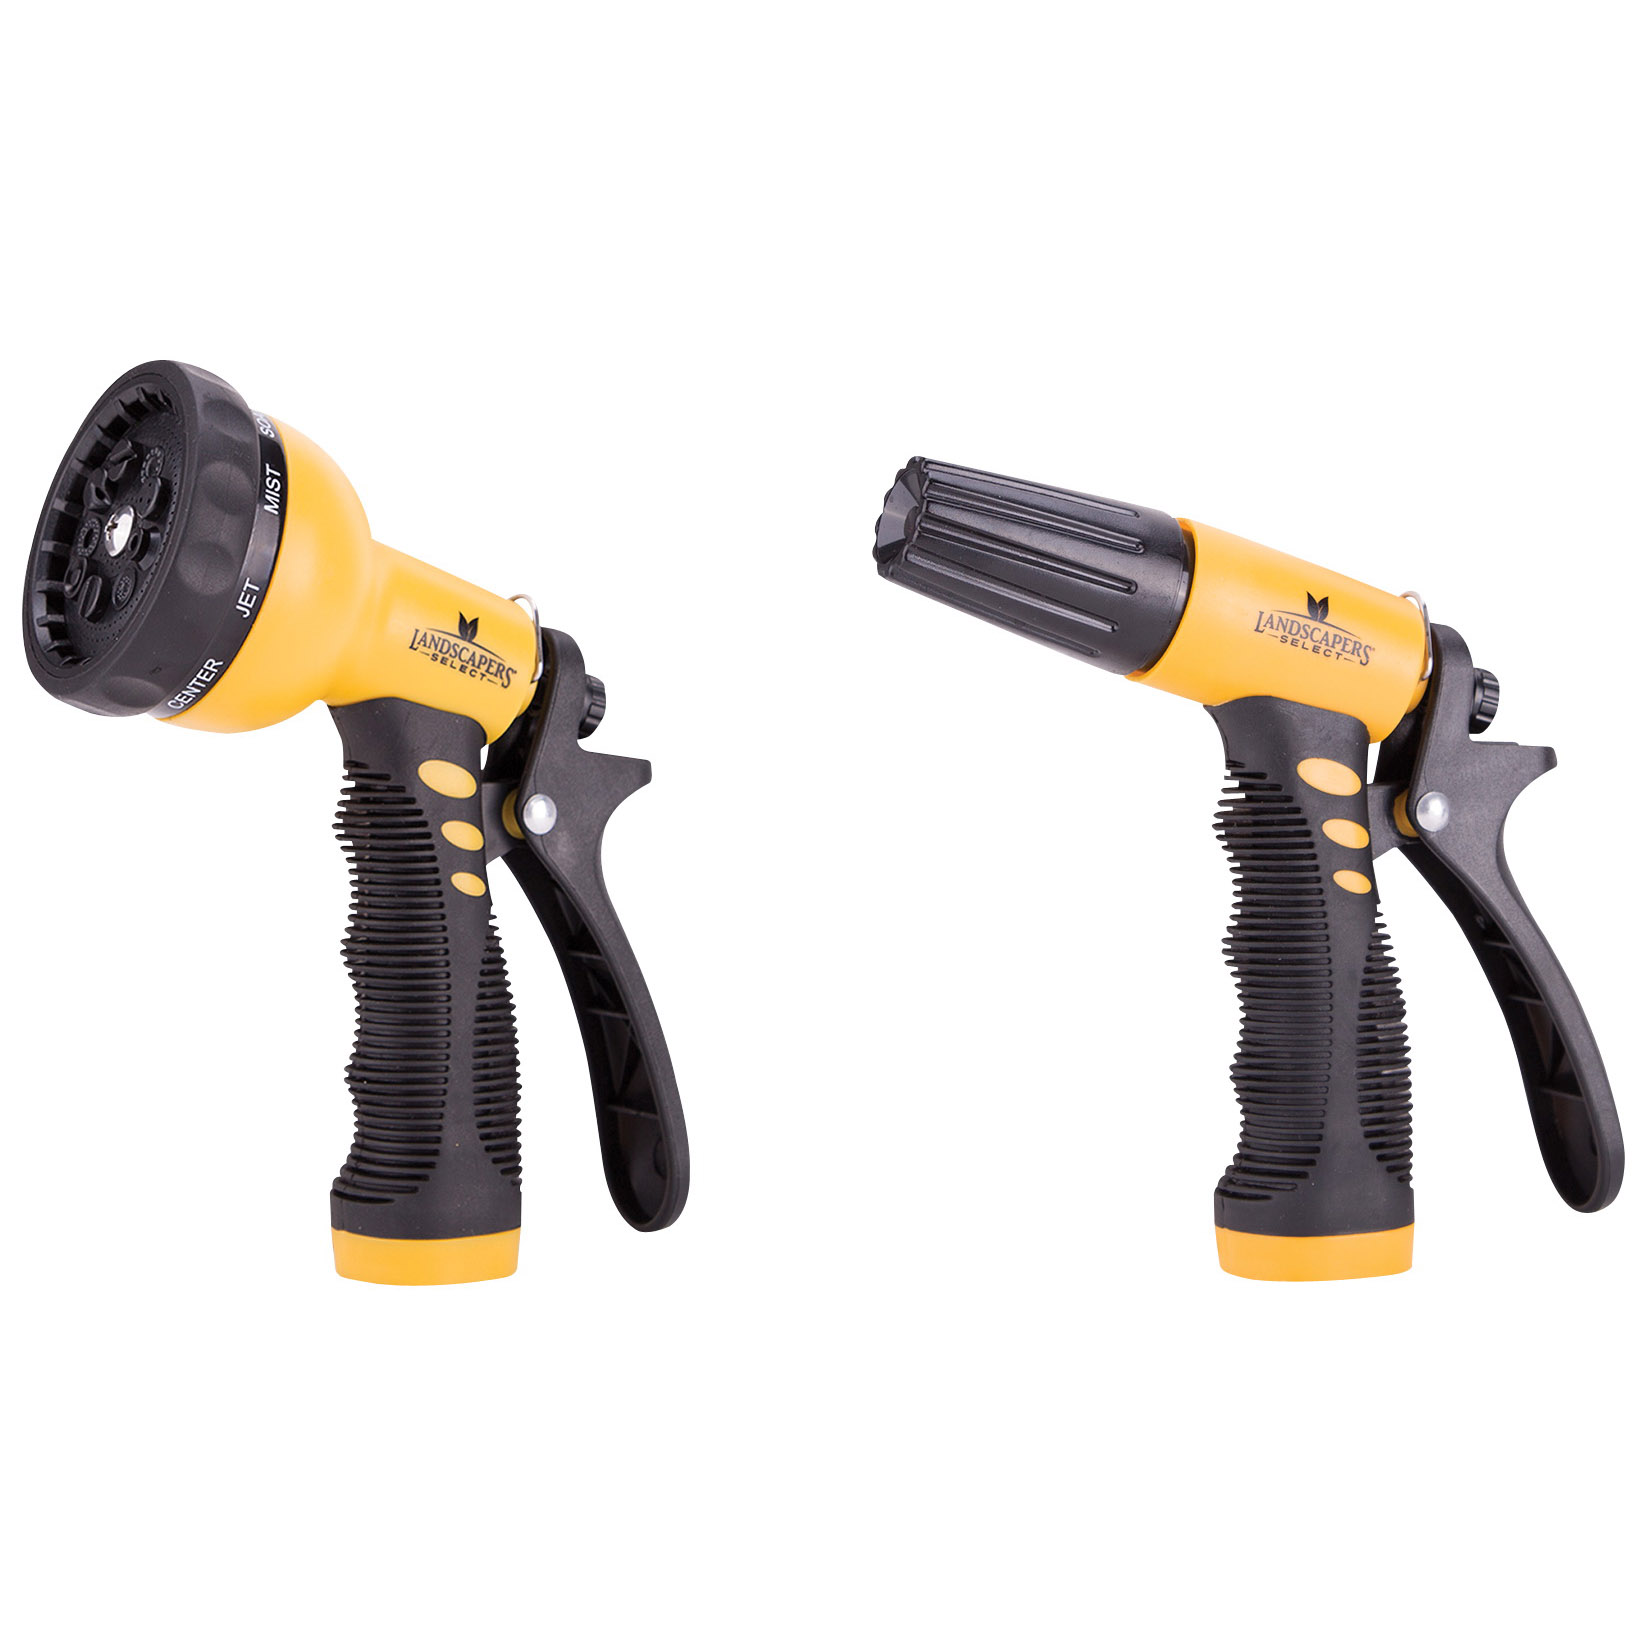 Picture of Landscapers Select GN43451+GN1945 Spray Nozzle Set, Female, Plastic, Yellow